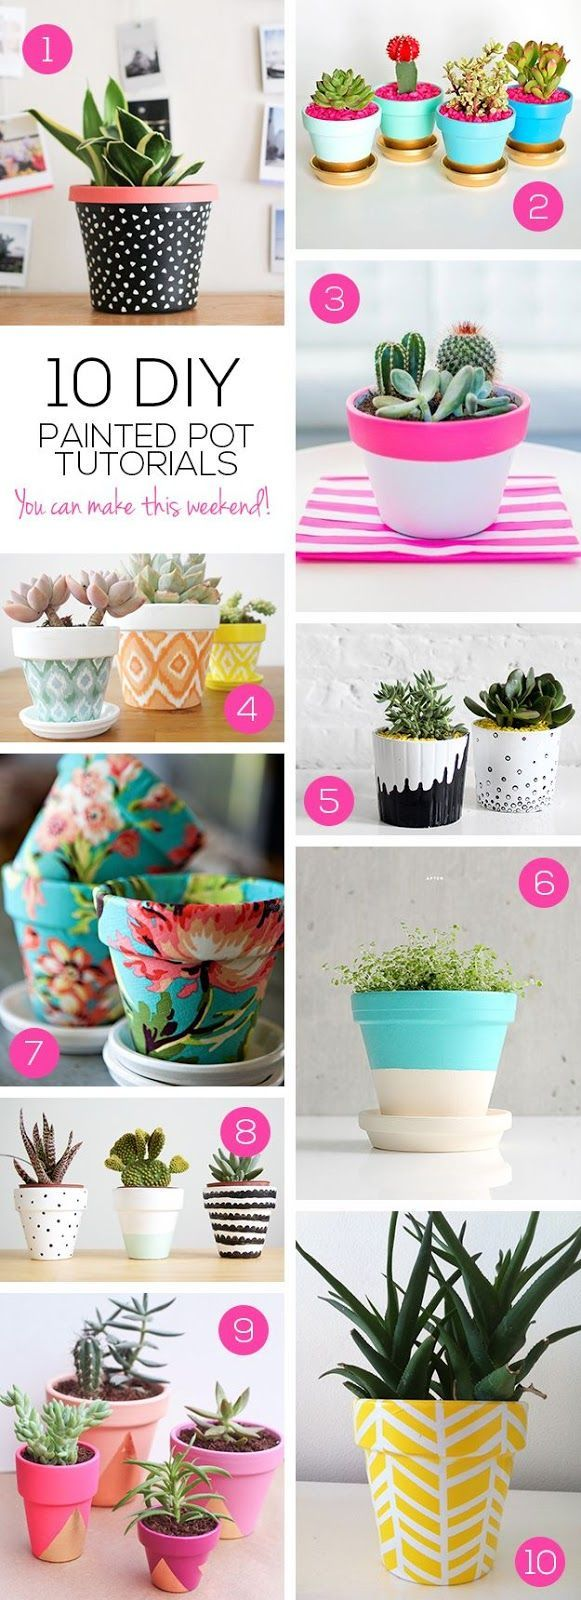 With the new trend for plants taking the UK by storm, I thought I'd share some gorgeous DIY painted plant pot tutorials from around the web ...